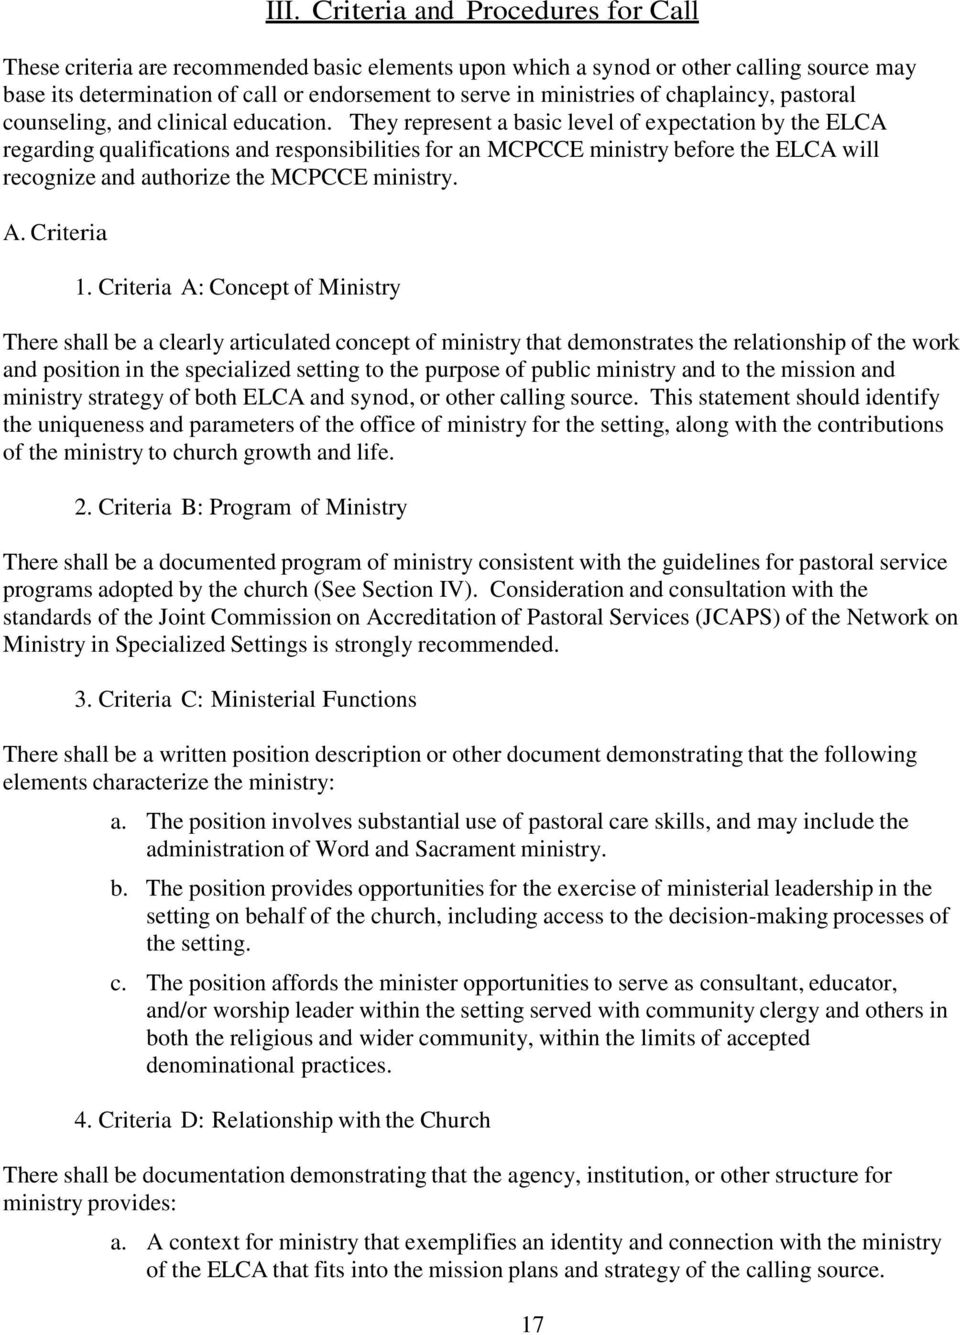 They represent a basic level of expectation by the ELCA regarding qualifications and responsibilities for an MCPCCE ministry before the ELCA will recognize and authorize the MCPCCE ministry. A.